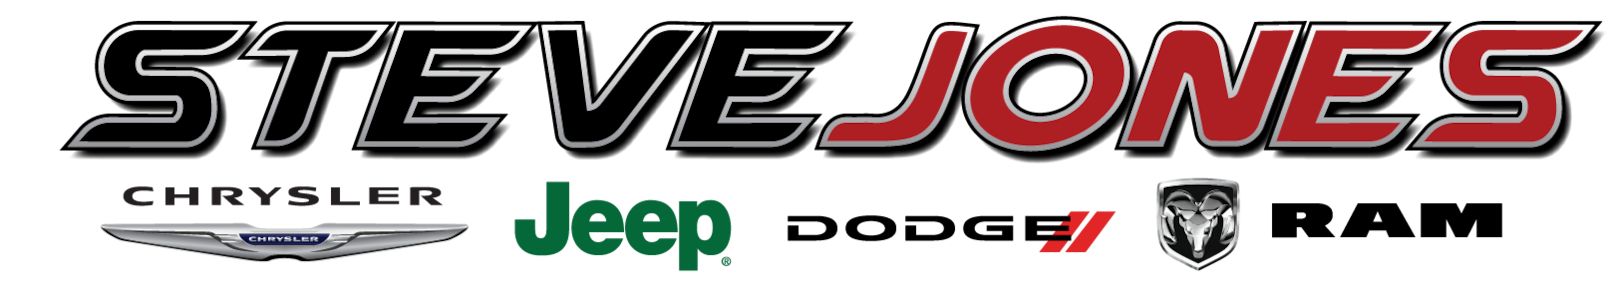 Steve Jones Chrysler, Dodge, Jeep